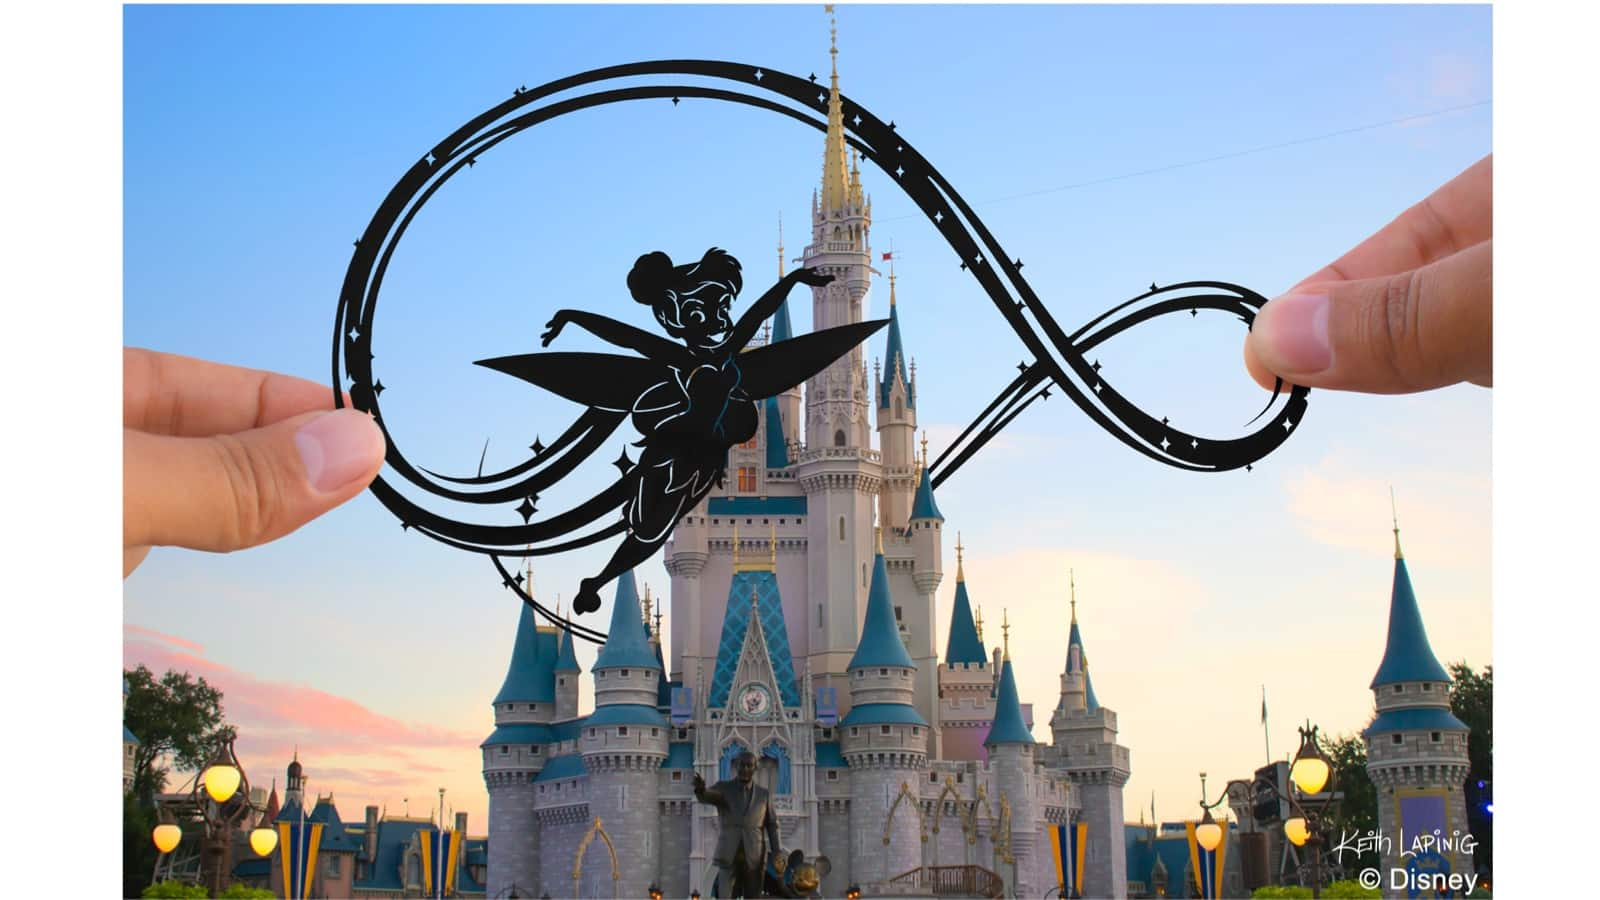 Disney Parks In Silhouette A Simply Magical Kingdom Disney Parks Blog